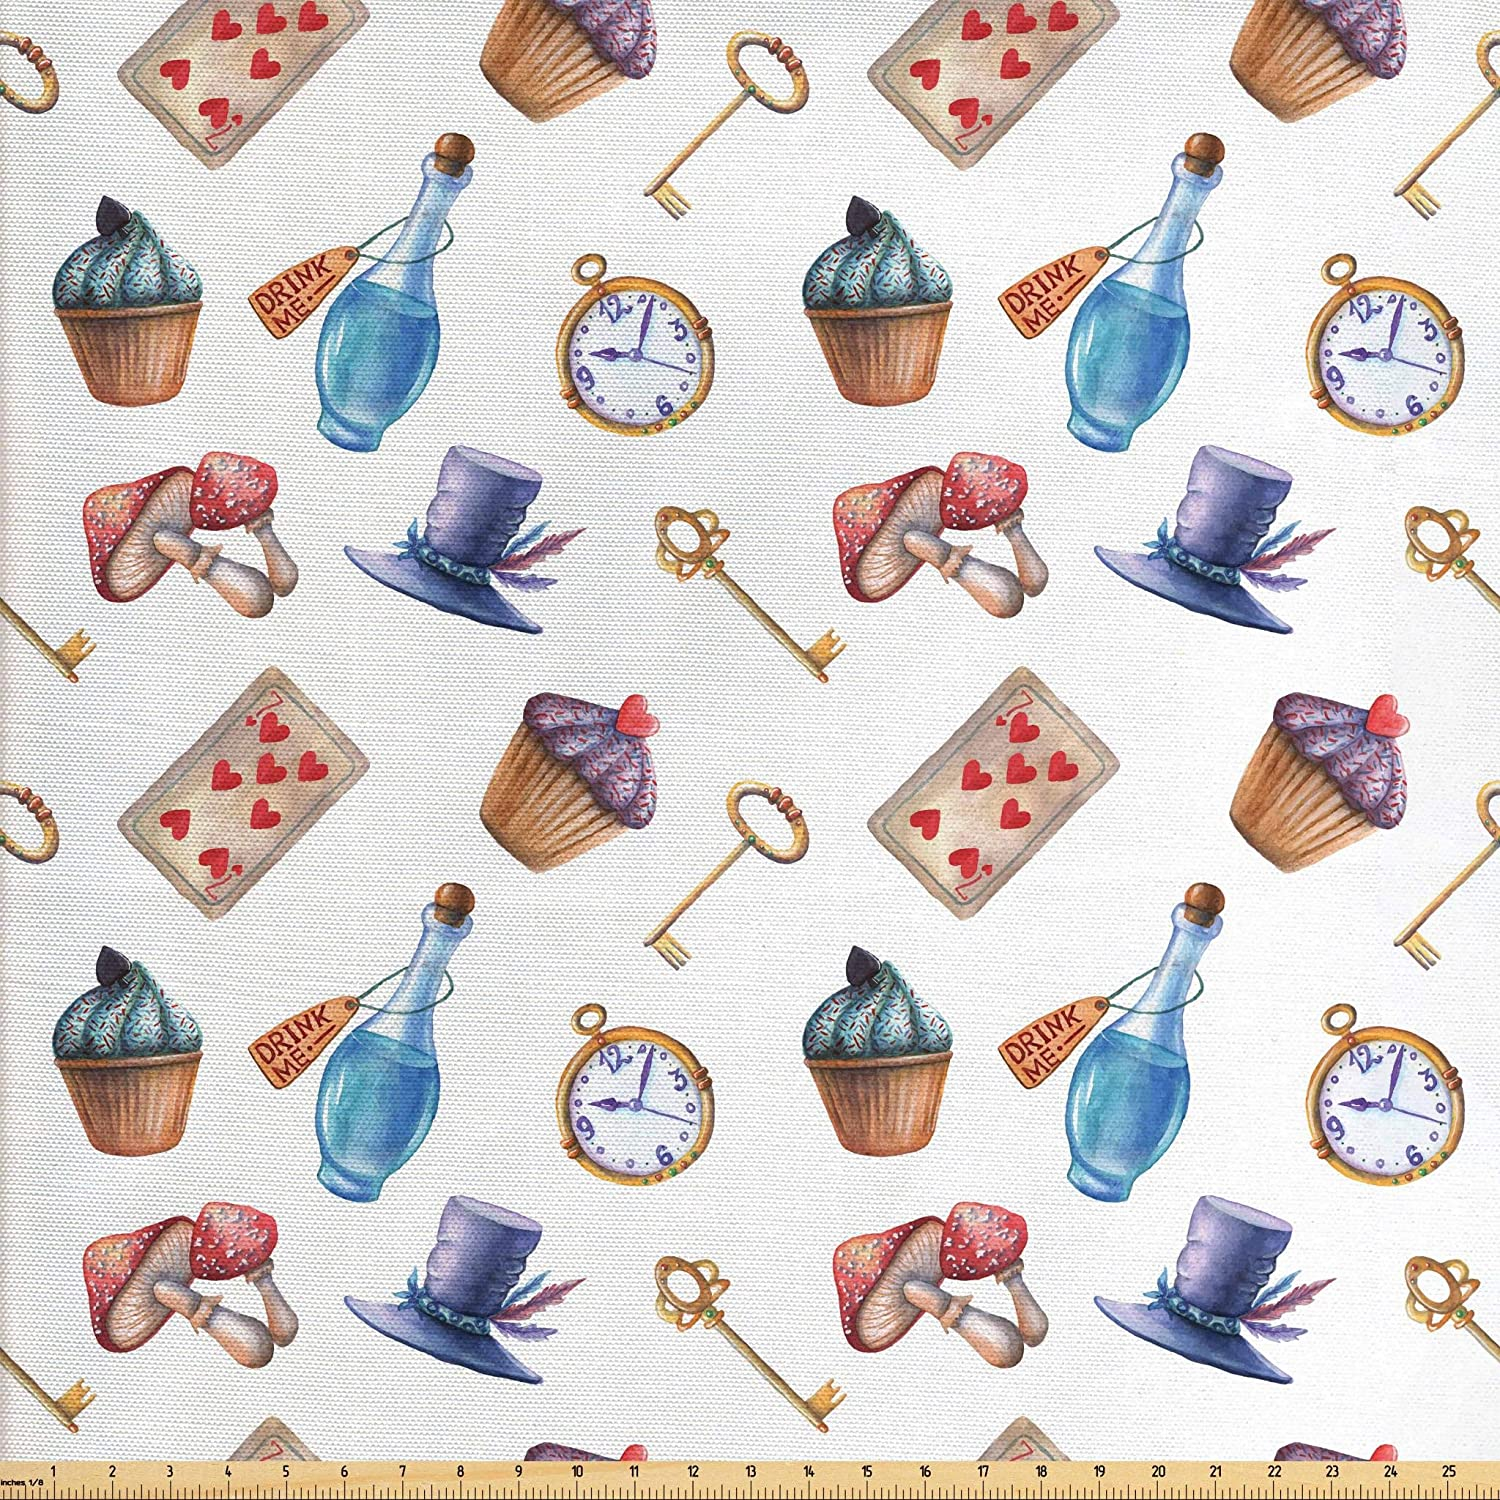 Lunarable Alice in Wonderland Fabric by The Yard, Cupcakes Mushrooms and Bottles Hanging in Sky Dessert Print, Decorative Fabric for Upholstery and Home Accents, 2 Yards, Multicolor